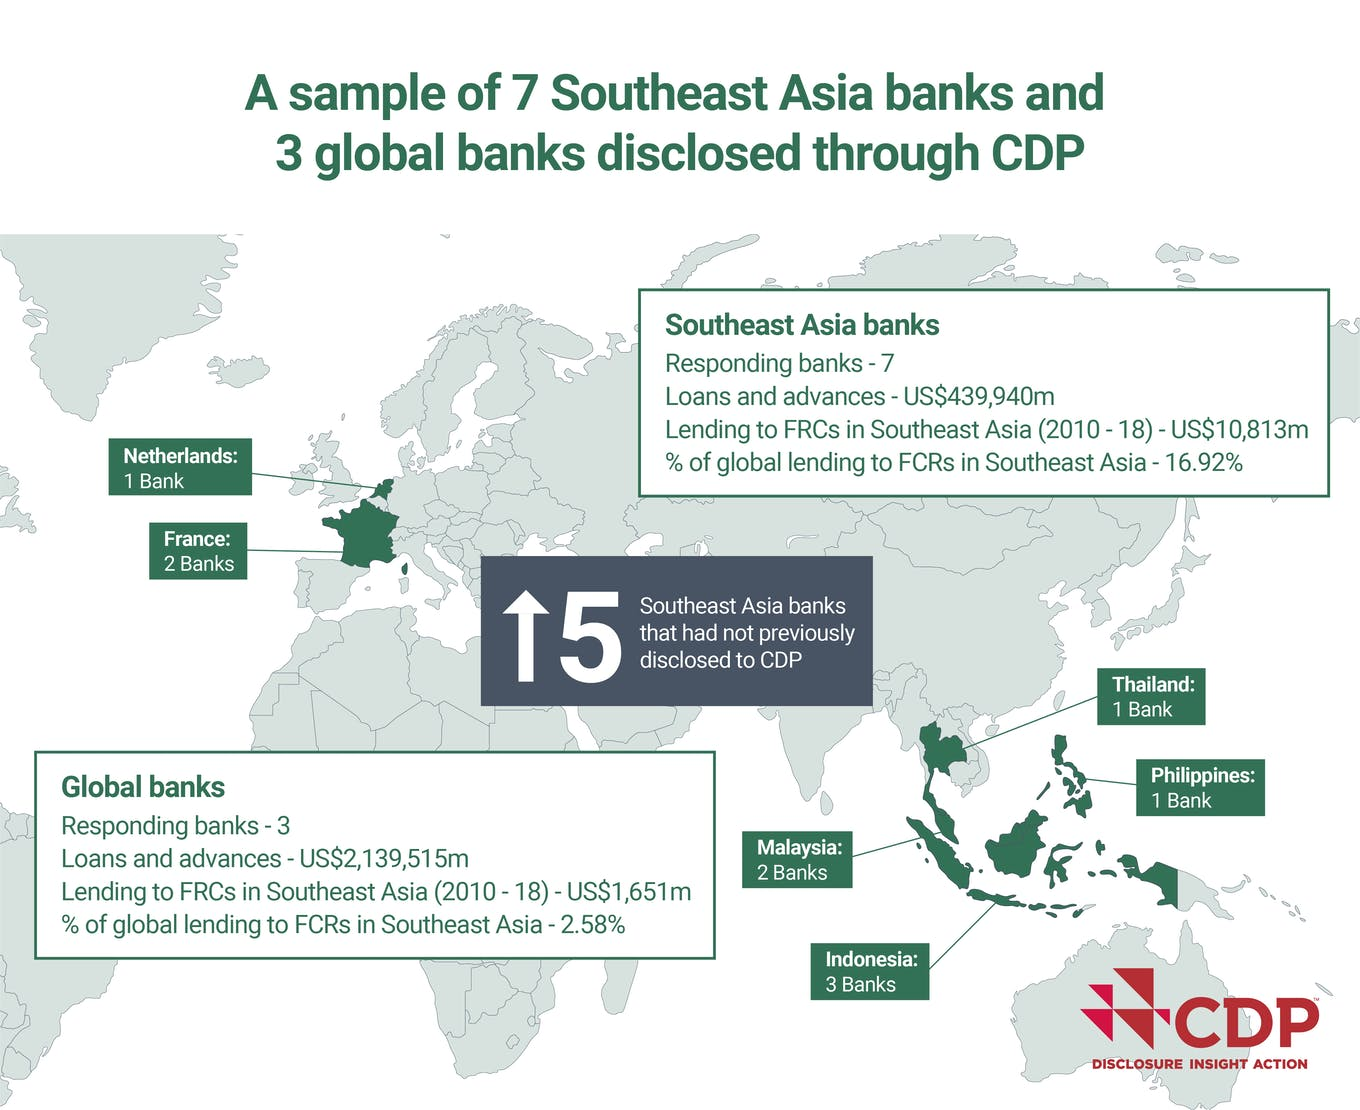 A sample of banks in SEA disclosed through CDP